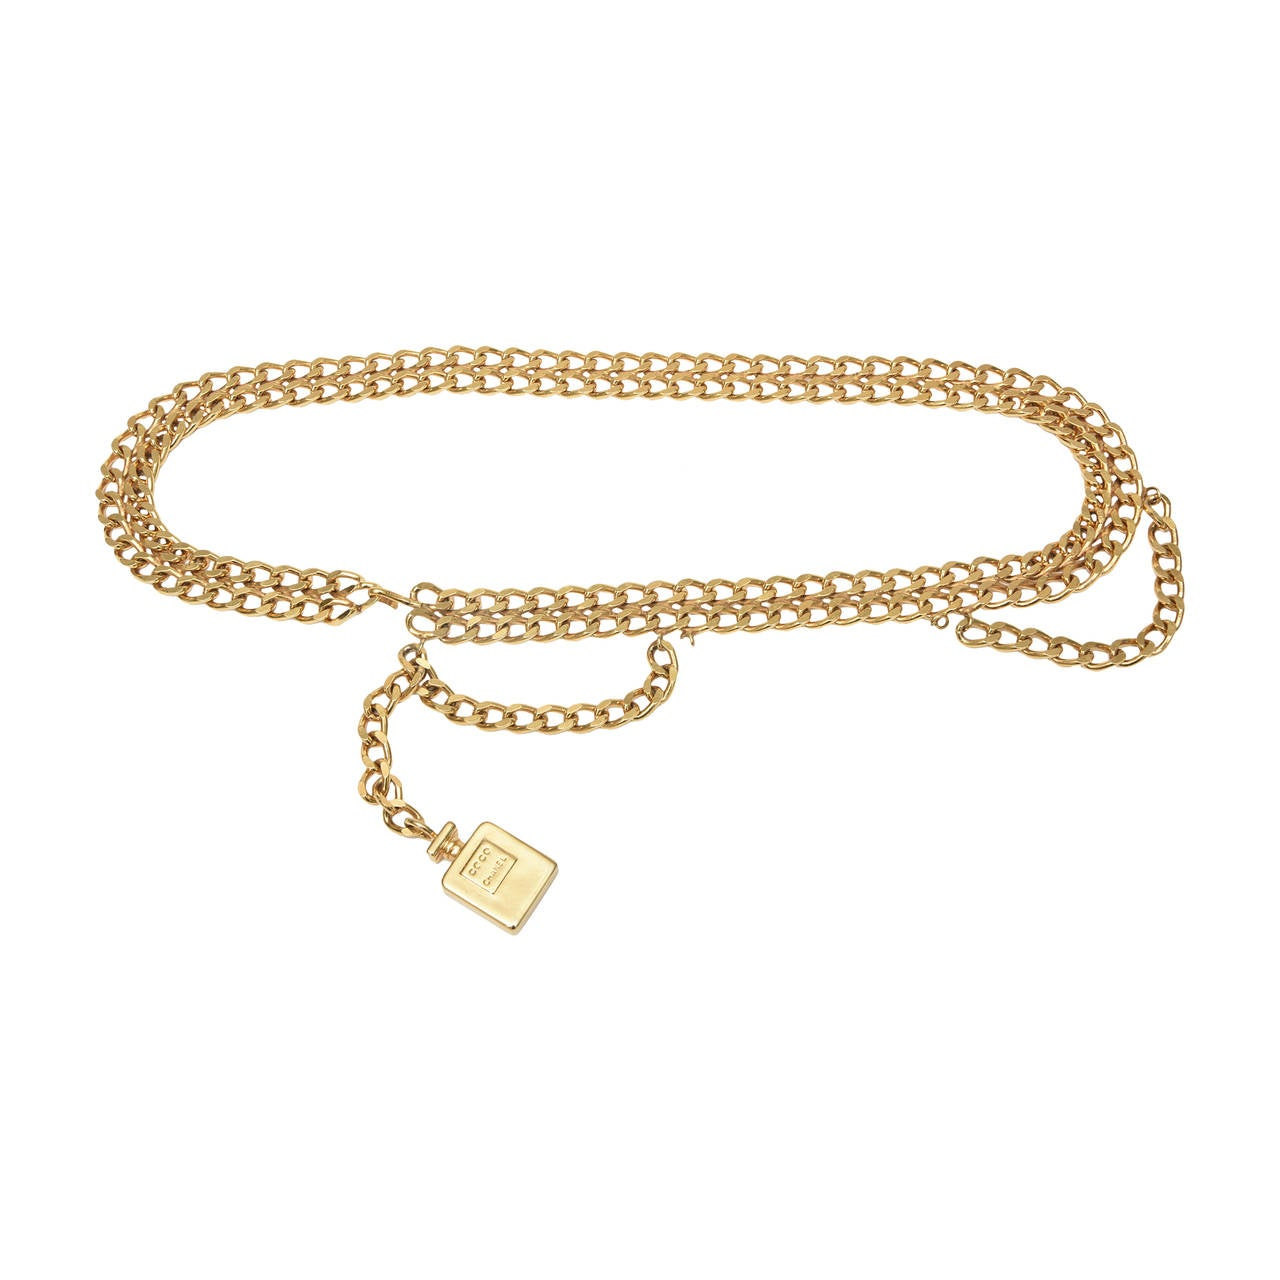 "Chanel Gold Plated Chain Link ""Coco Chanel"" Perfume Dangler Belt 1"